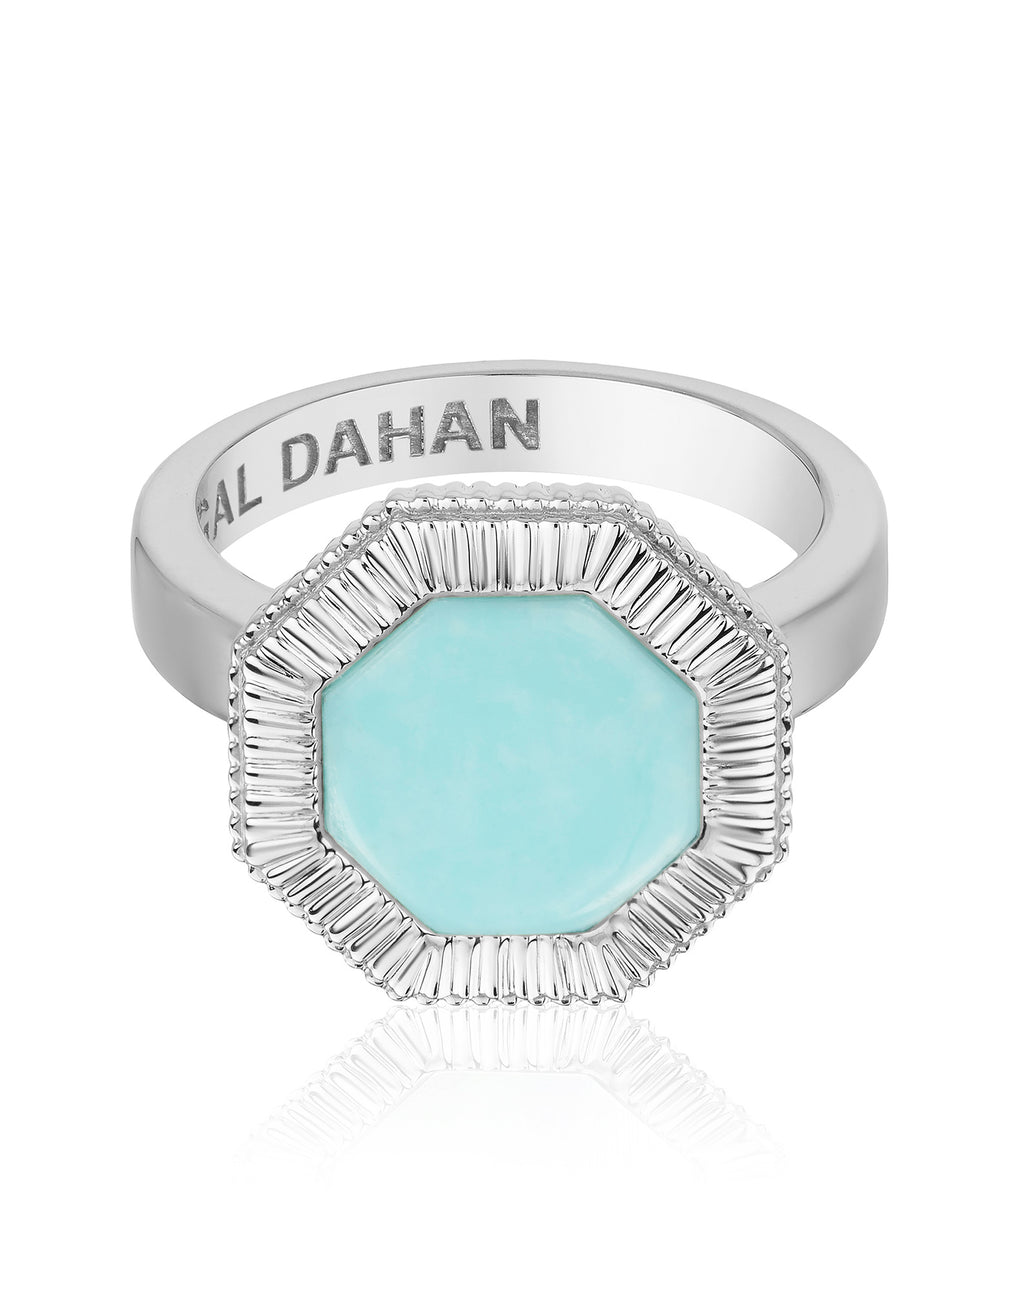 Octaday Ring with Turquoise